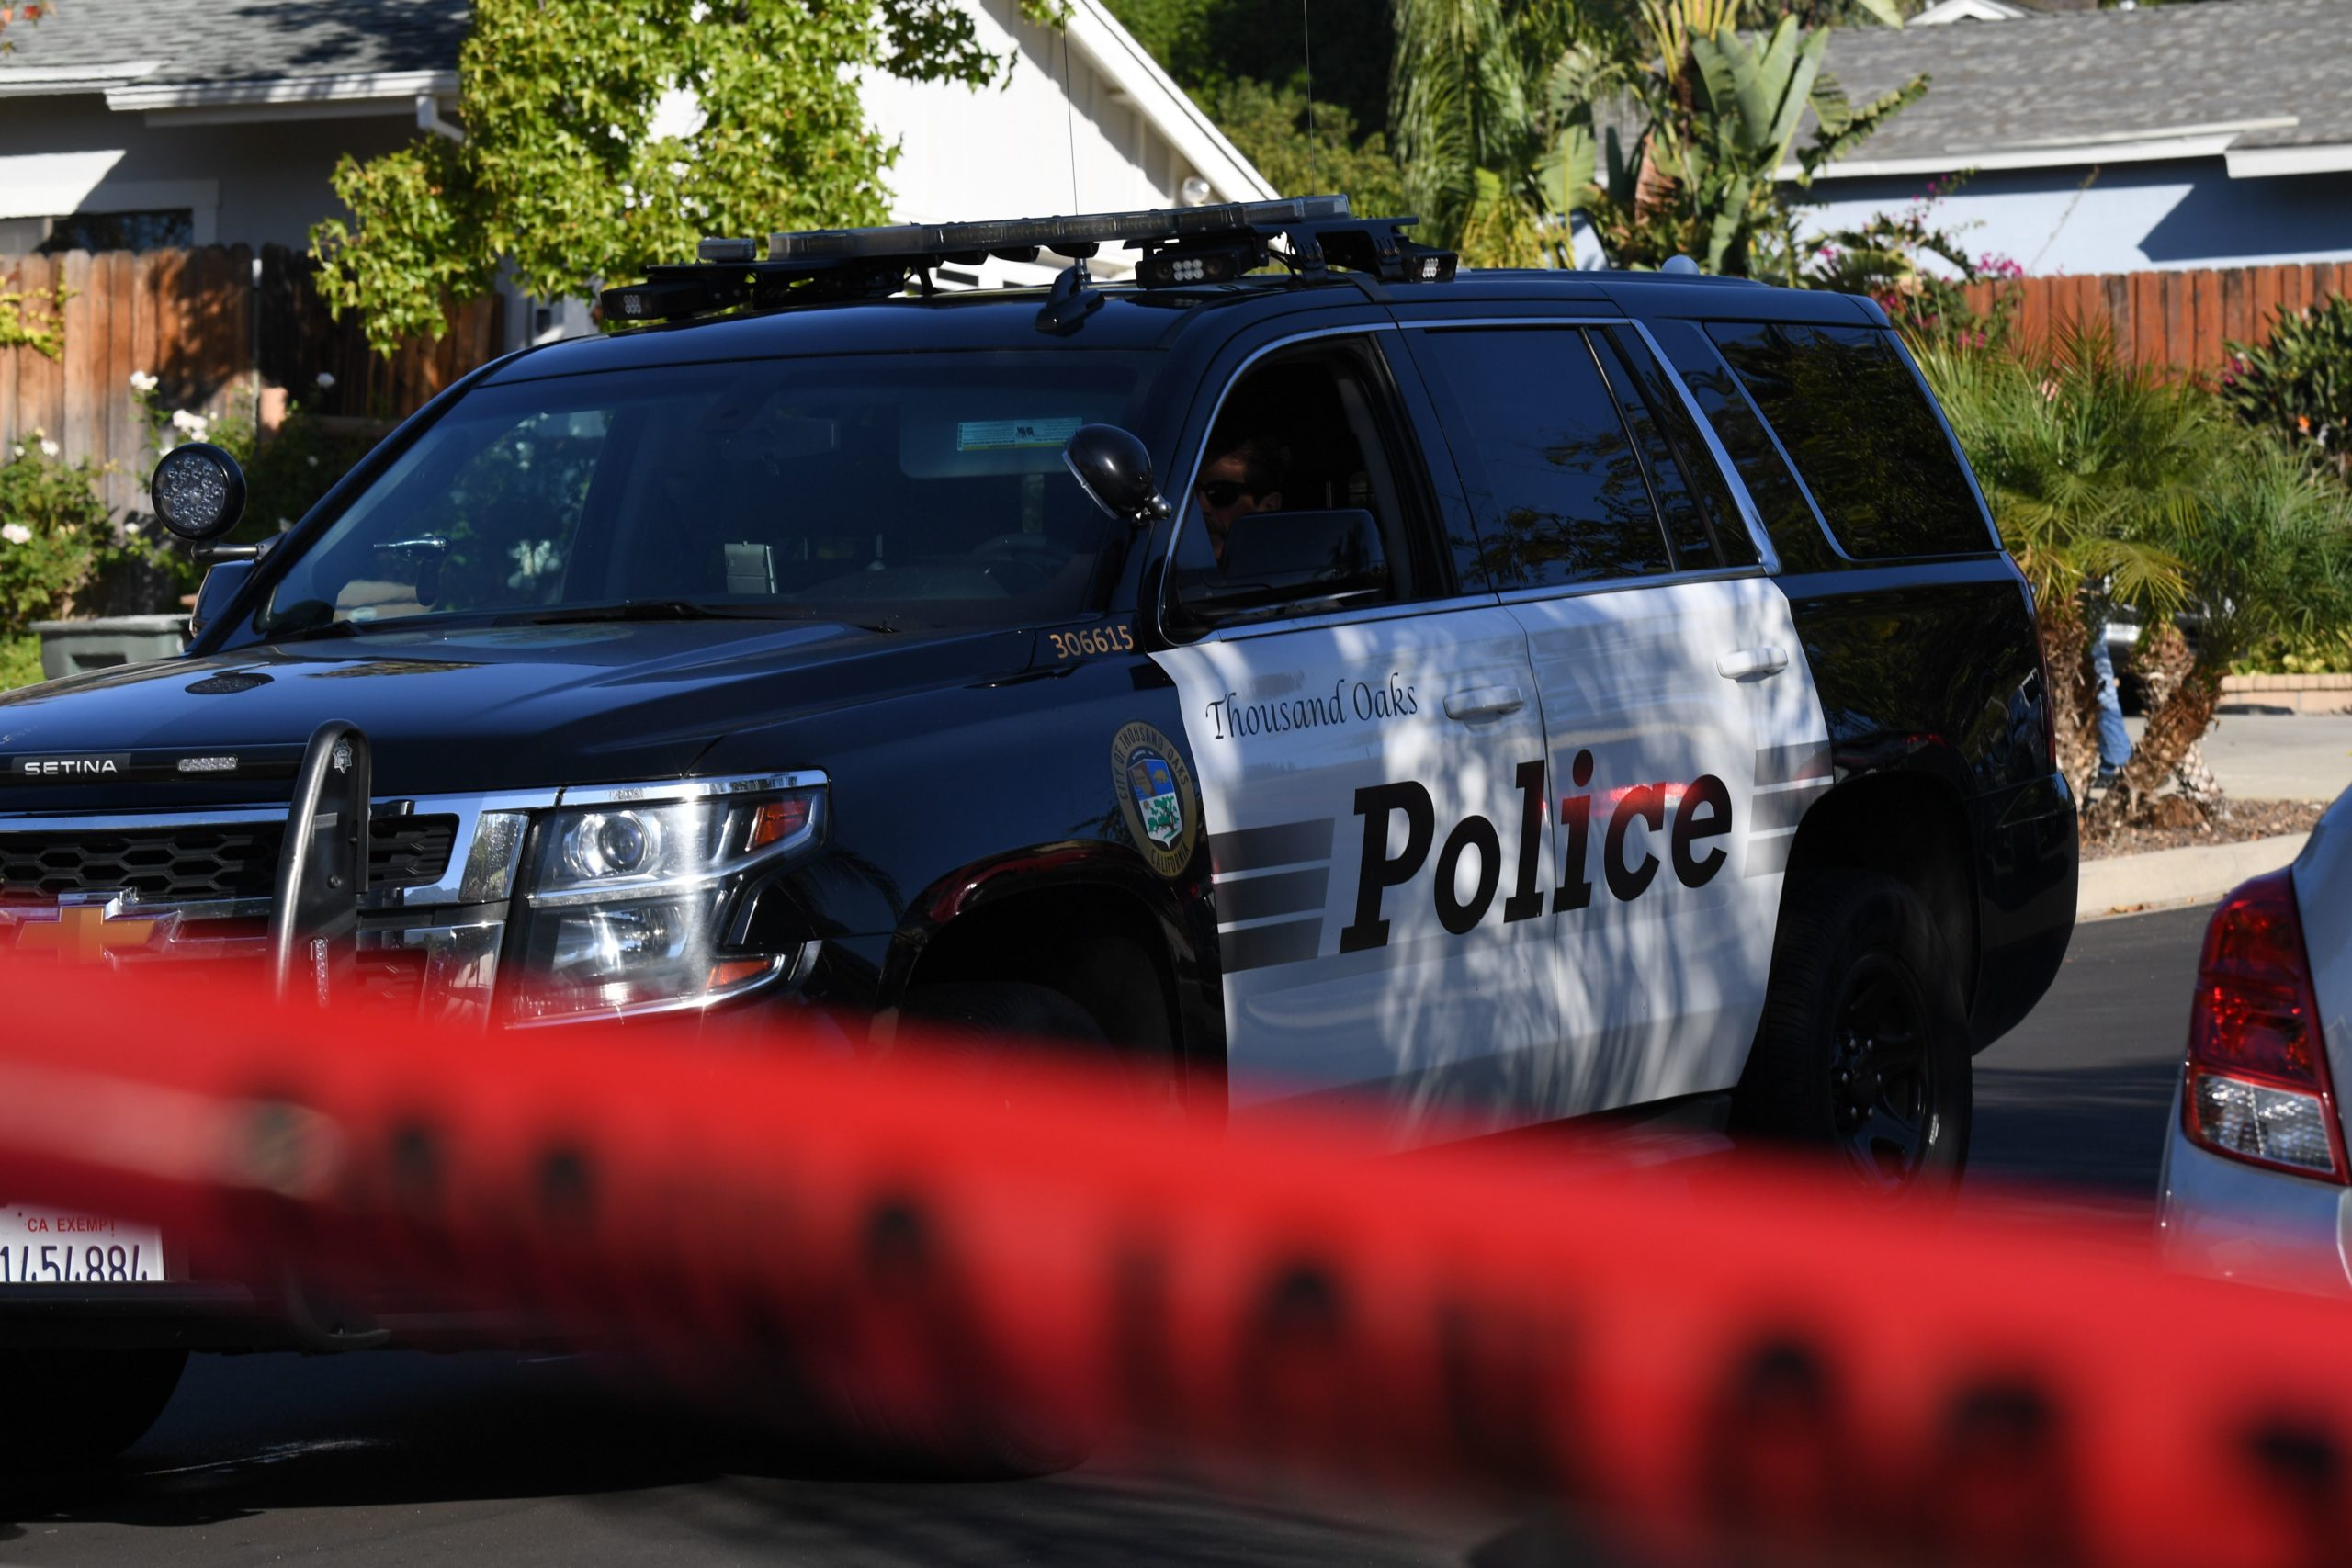 Police provide security as the home of suspected nightclub shooter Ian David Long is cordoned with red crime tape on November 8 2018, in Thousand Oaks, California, as FBI and ATF officers conduct a search. - The gunman who killed 12 people in a crowded California country music bar has been identified as 28-year-old Ian David Long, a former Marine, the local sheriff said Thursday. The suspect, who was armed with a .45-caliber handgun, was found deceased at the Borderline Bar and Grill, the scene of the shooting in the city of Thousand Oaks northwest of downtown Los Angeles. (Photo by Robyn Beck / AFP) (Photo by ROBYN BECK/AFP via Getty Images)